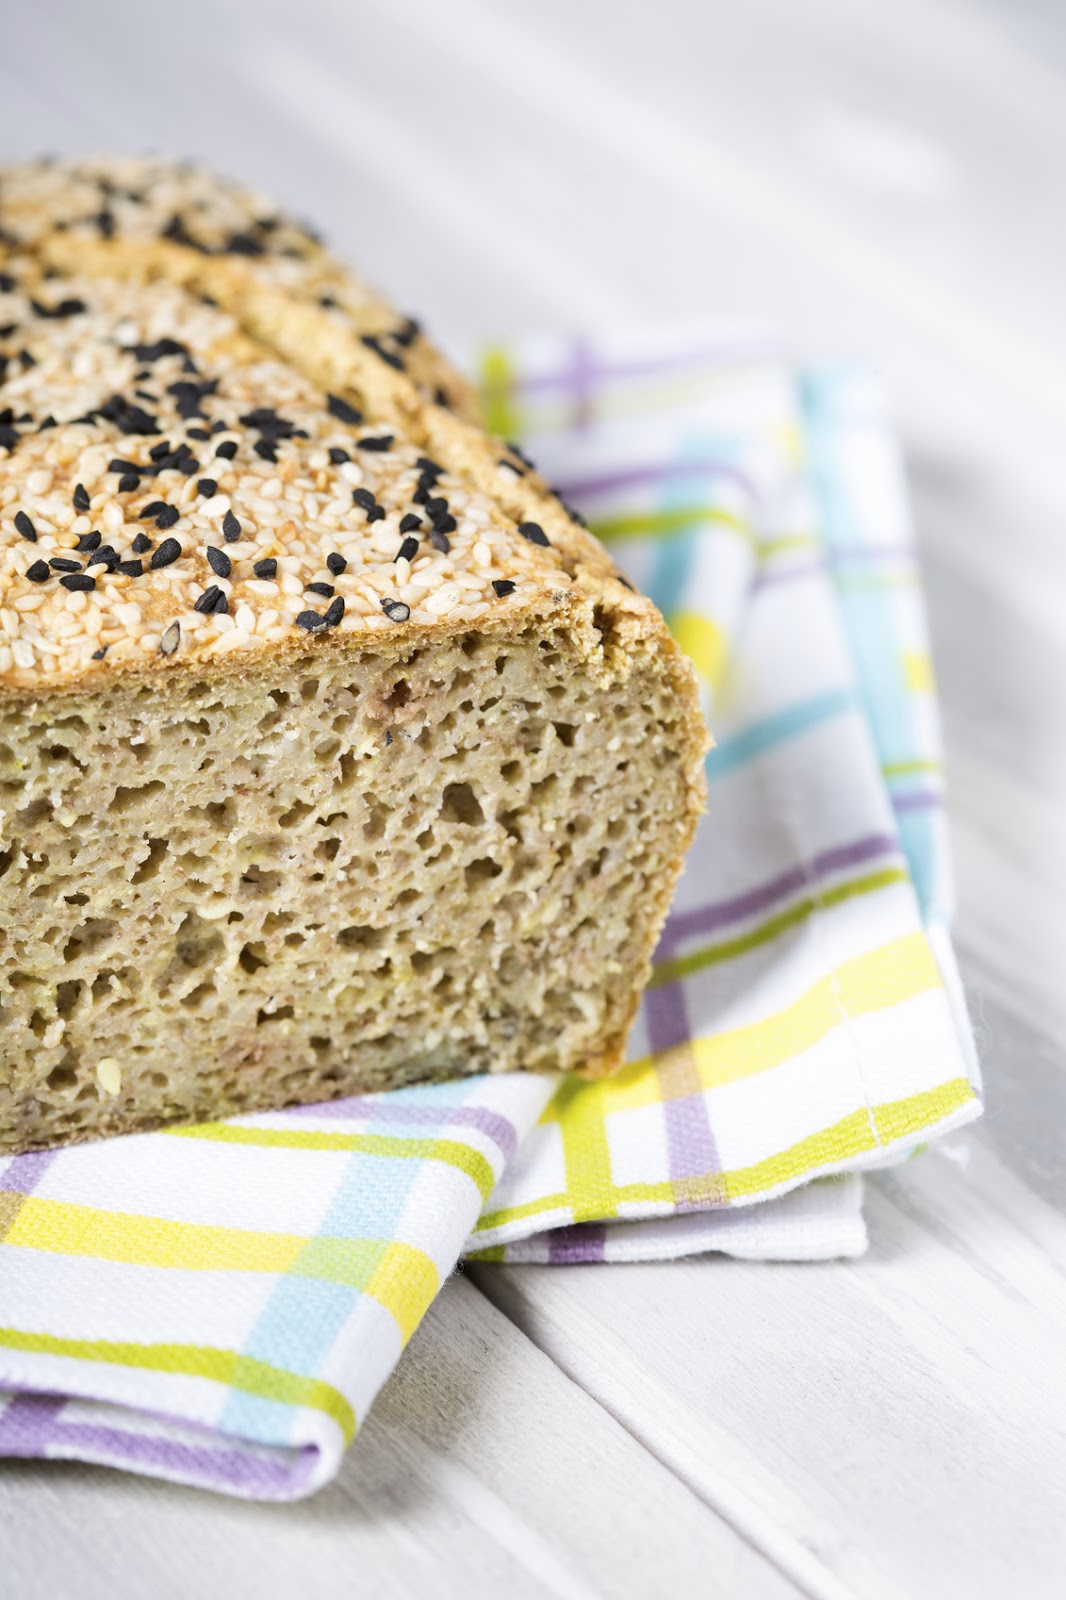 Buckwheat Gluten-Free Bread Loaf